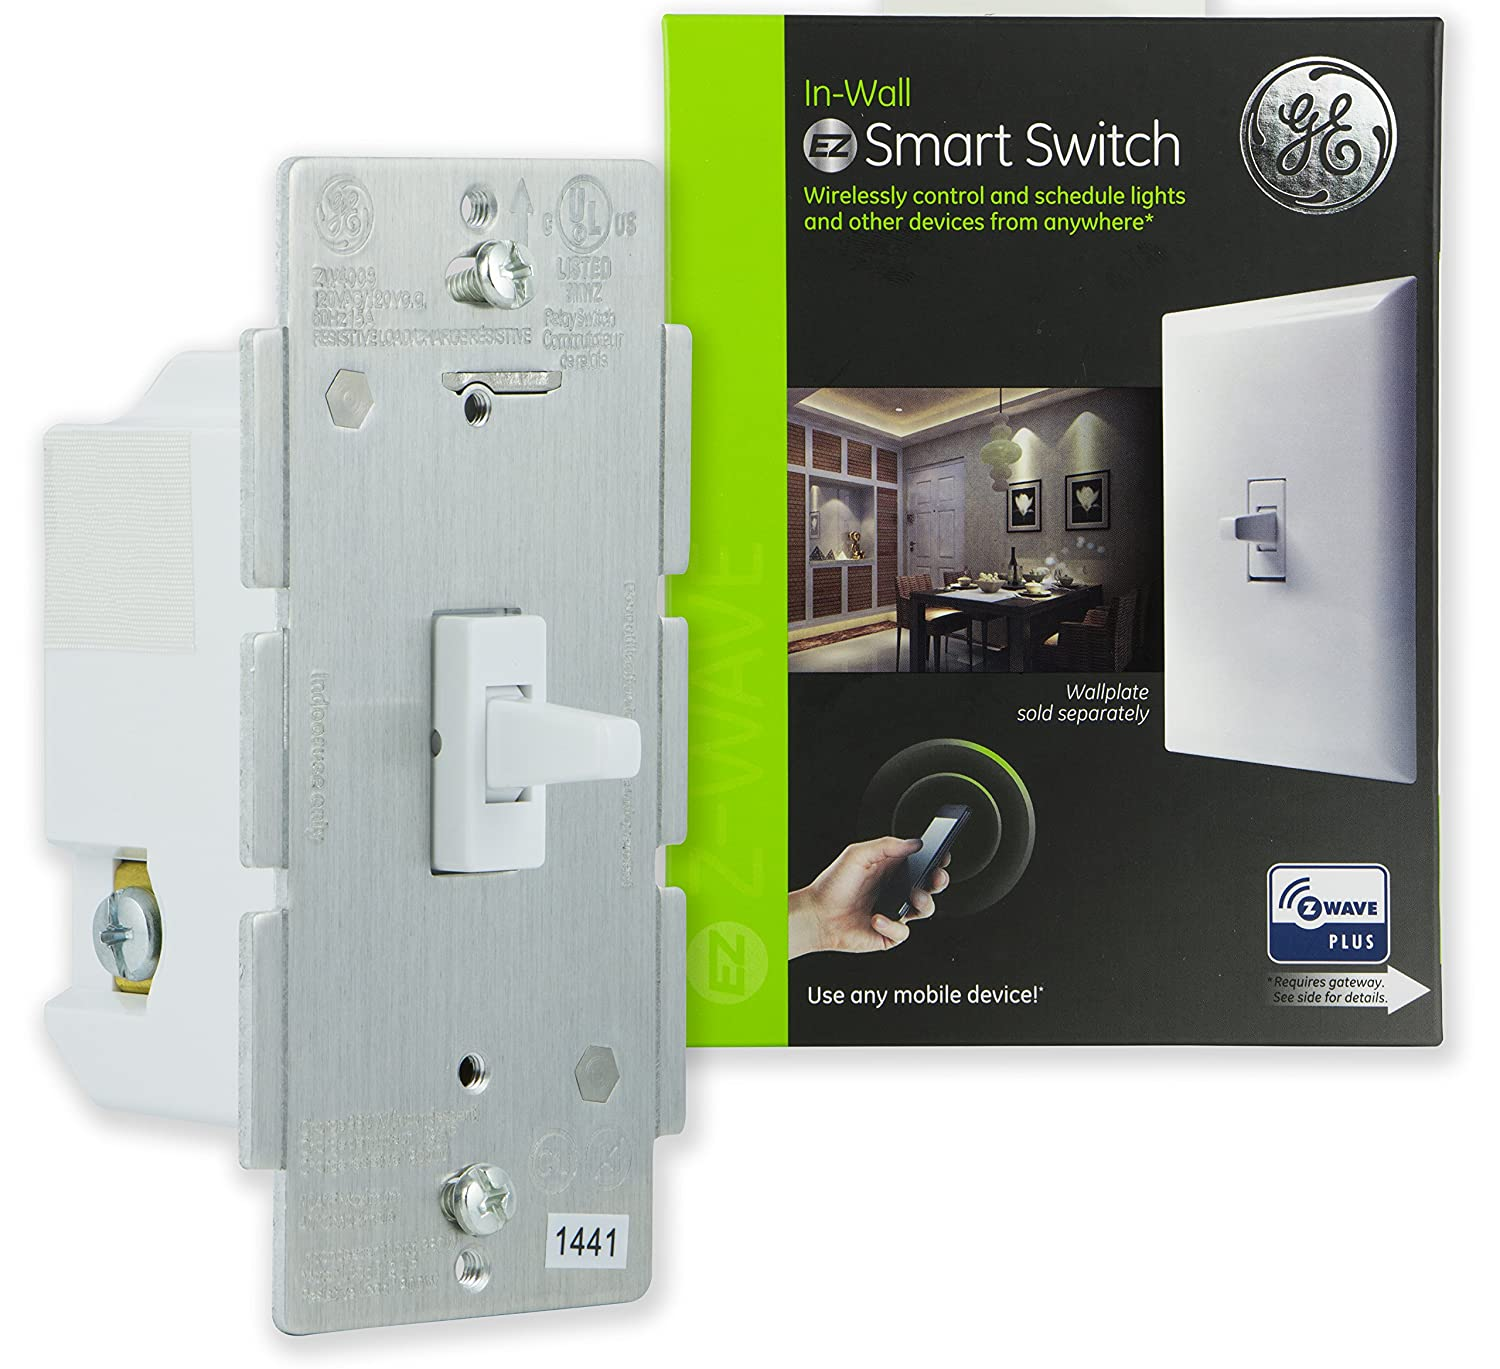 GE Enbrighten Z-Wave Plus Smart Toggle Light Switch, On/Off Control, in-Wall, Built-in Repeater/Range Extender, Zwave Hub Required, Works with SmartThings Wink and Alexa, 14292